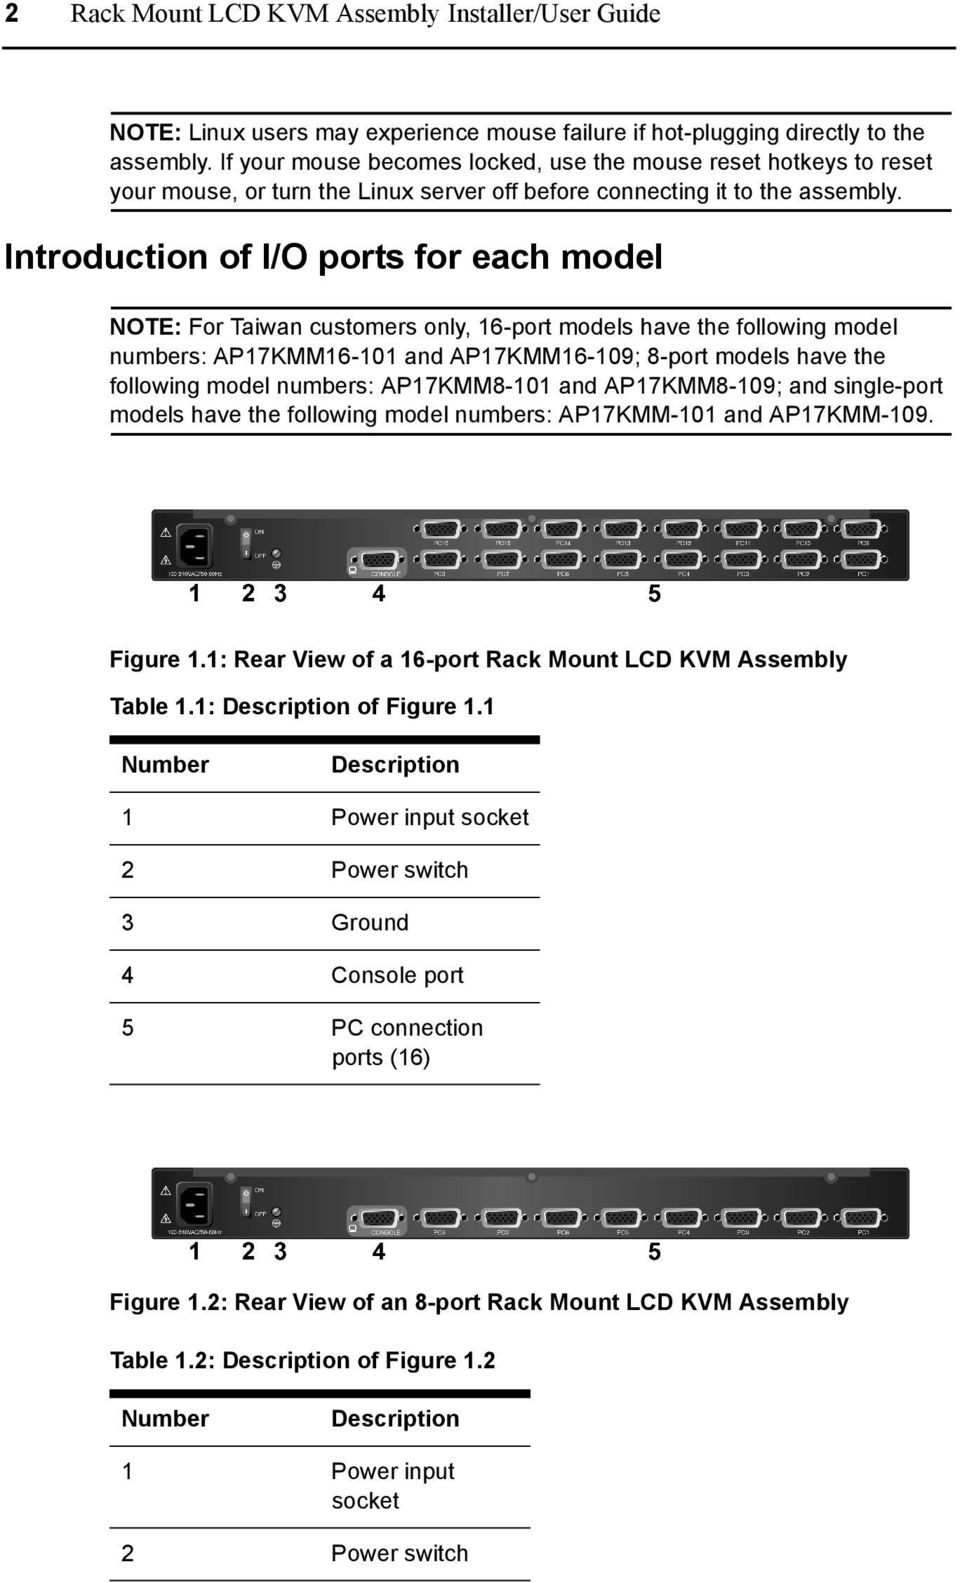 Introduction of I/O ports for each model NOTE: For Taiwan customers only, 16-port models have the following model numbers: AP17KMM16-101 and AP17KMM16-109; 8-port models have the following model